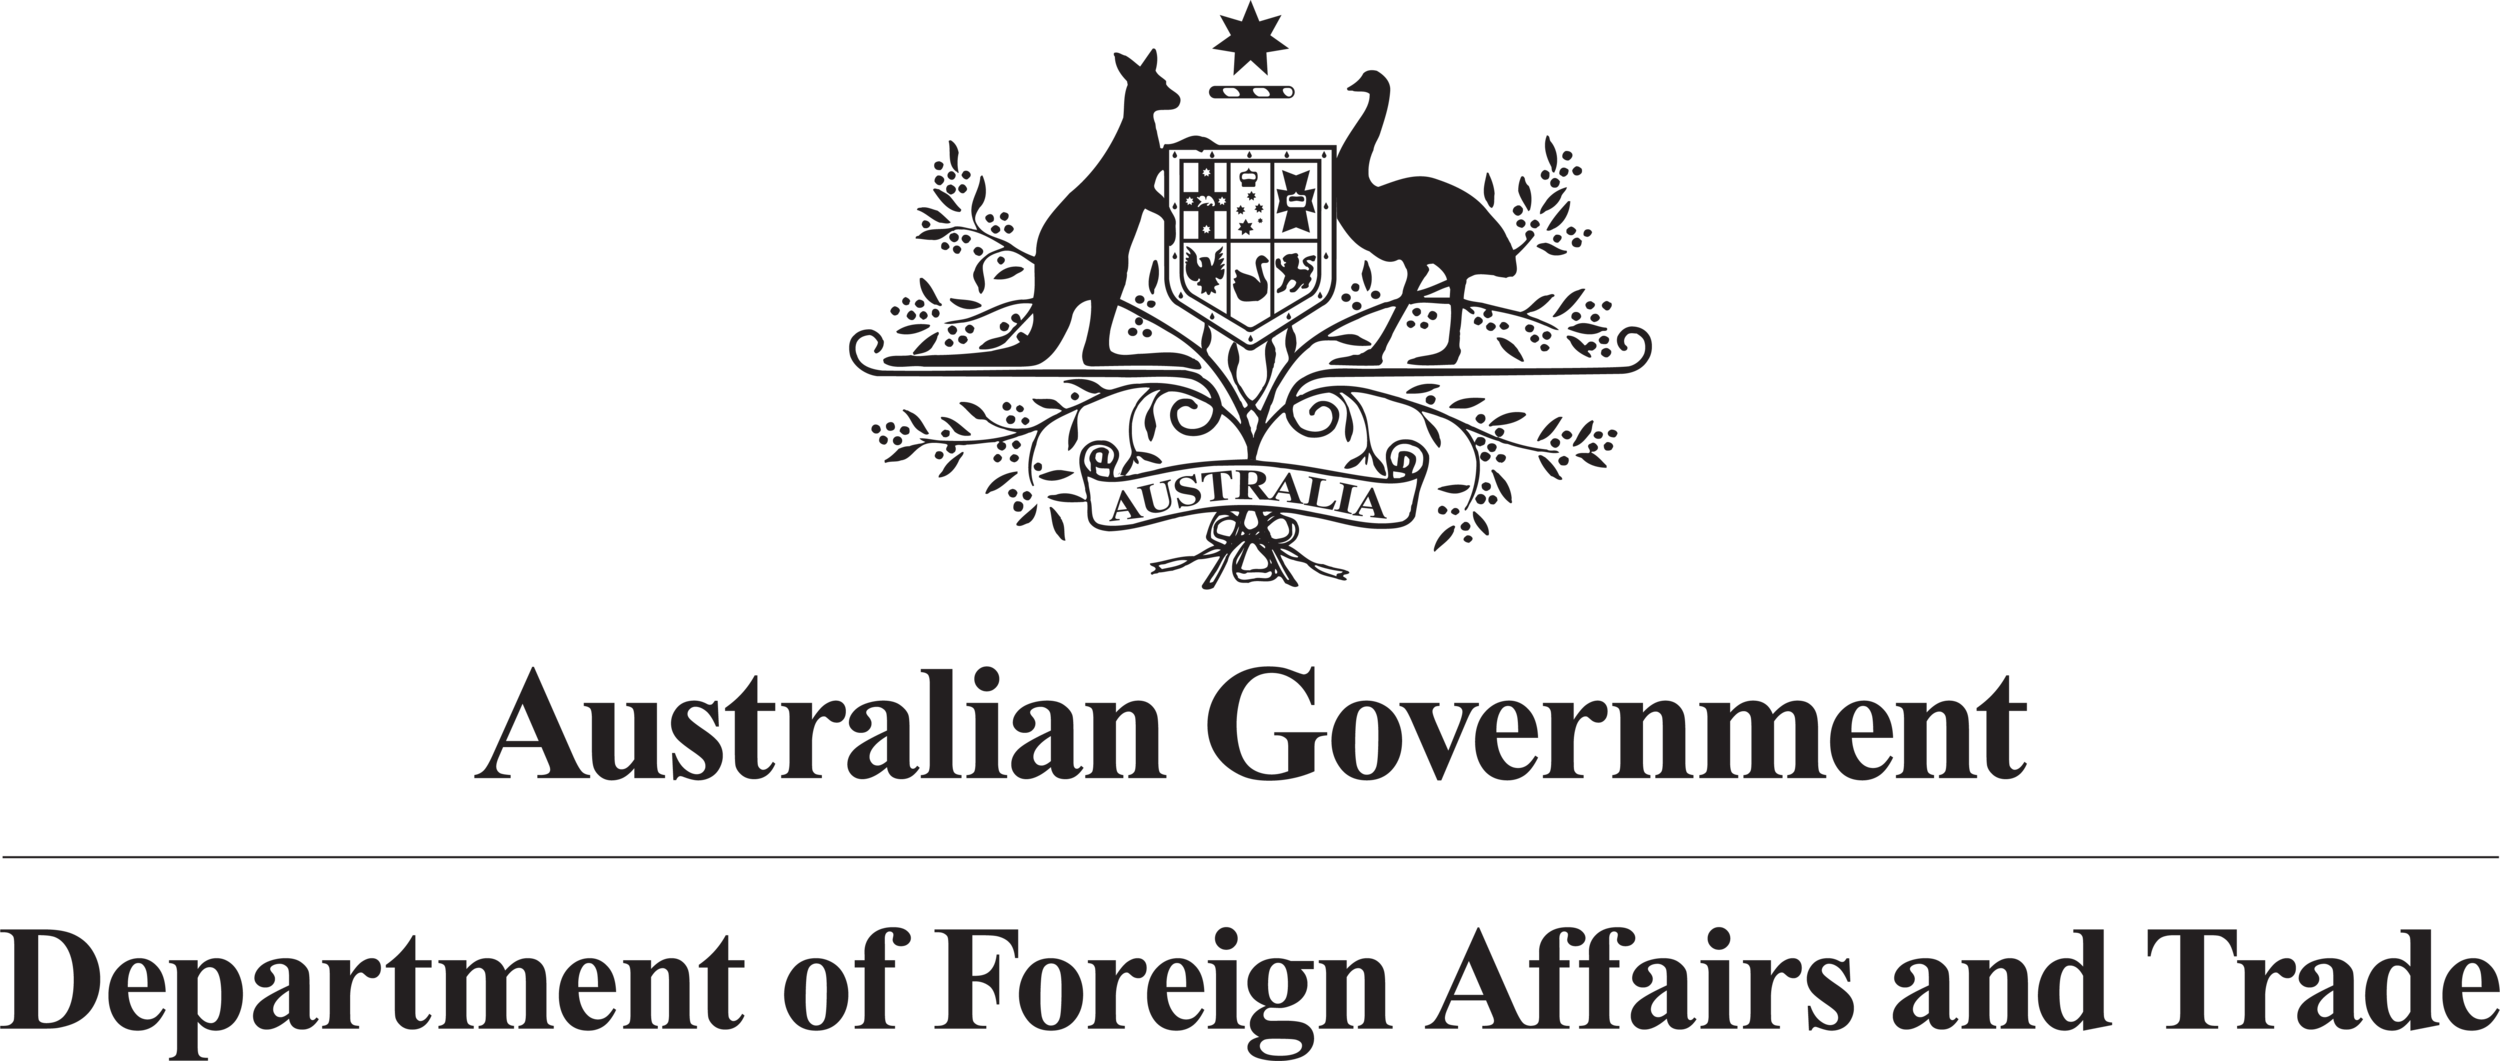 DFAT_Stacked_Black_transparent.png